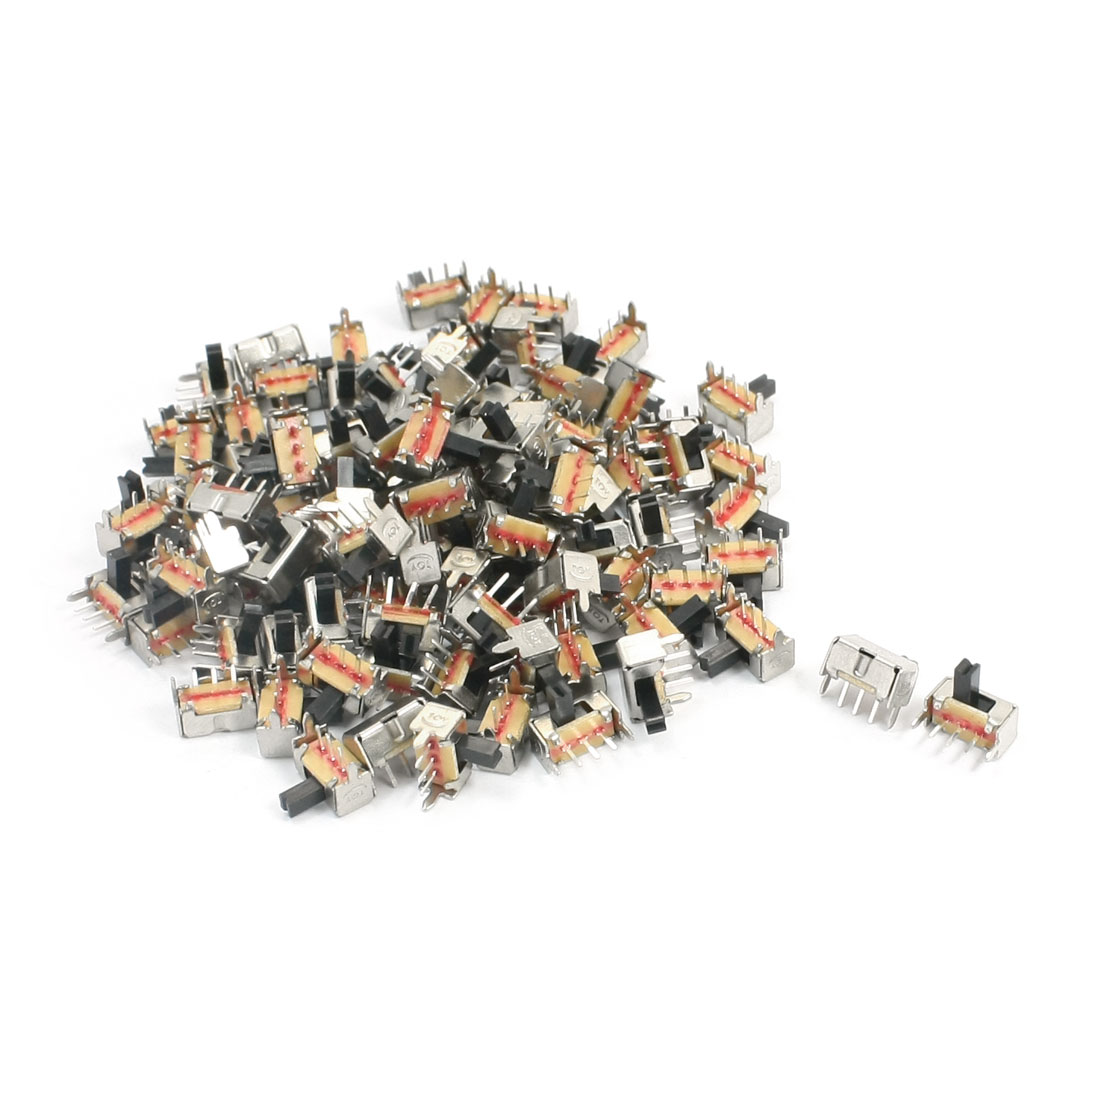 100PCS 3 Solder Lug Pin 2 Position SPDT Panel Mount Slide Switch DC50V 0.8A